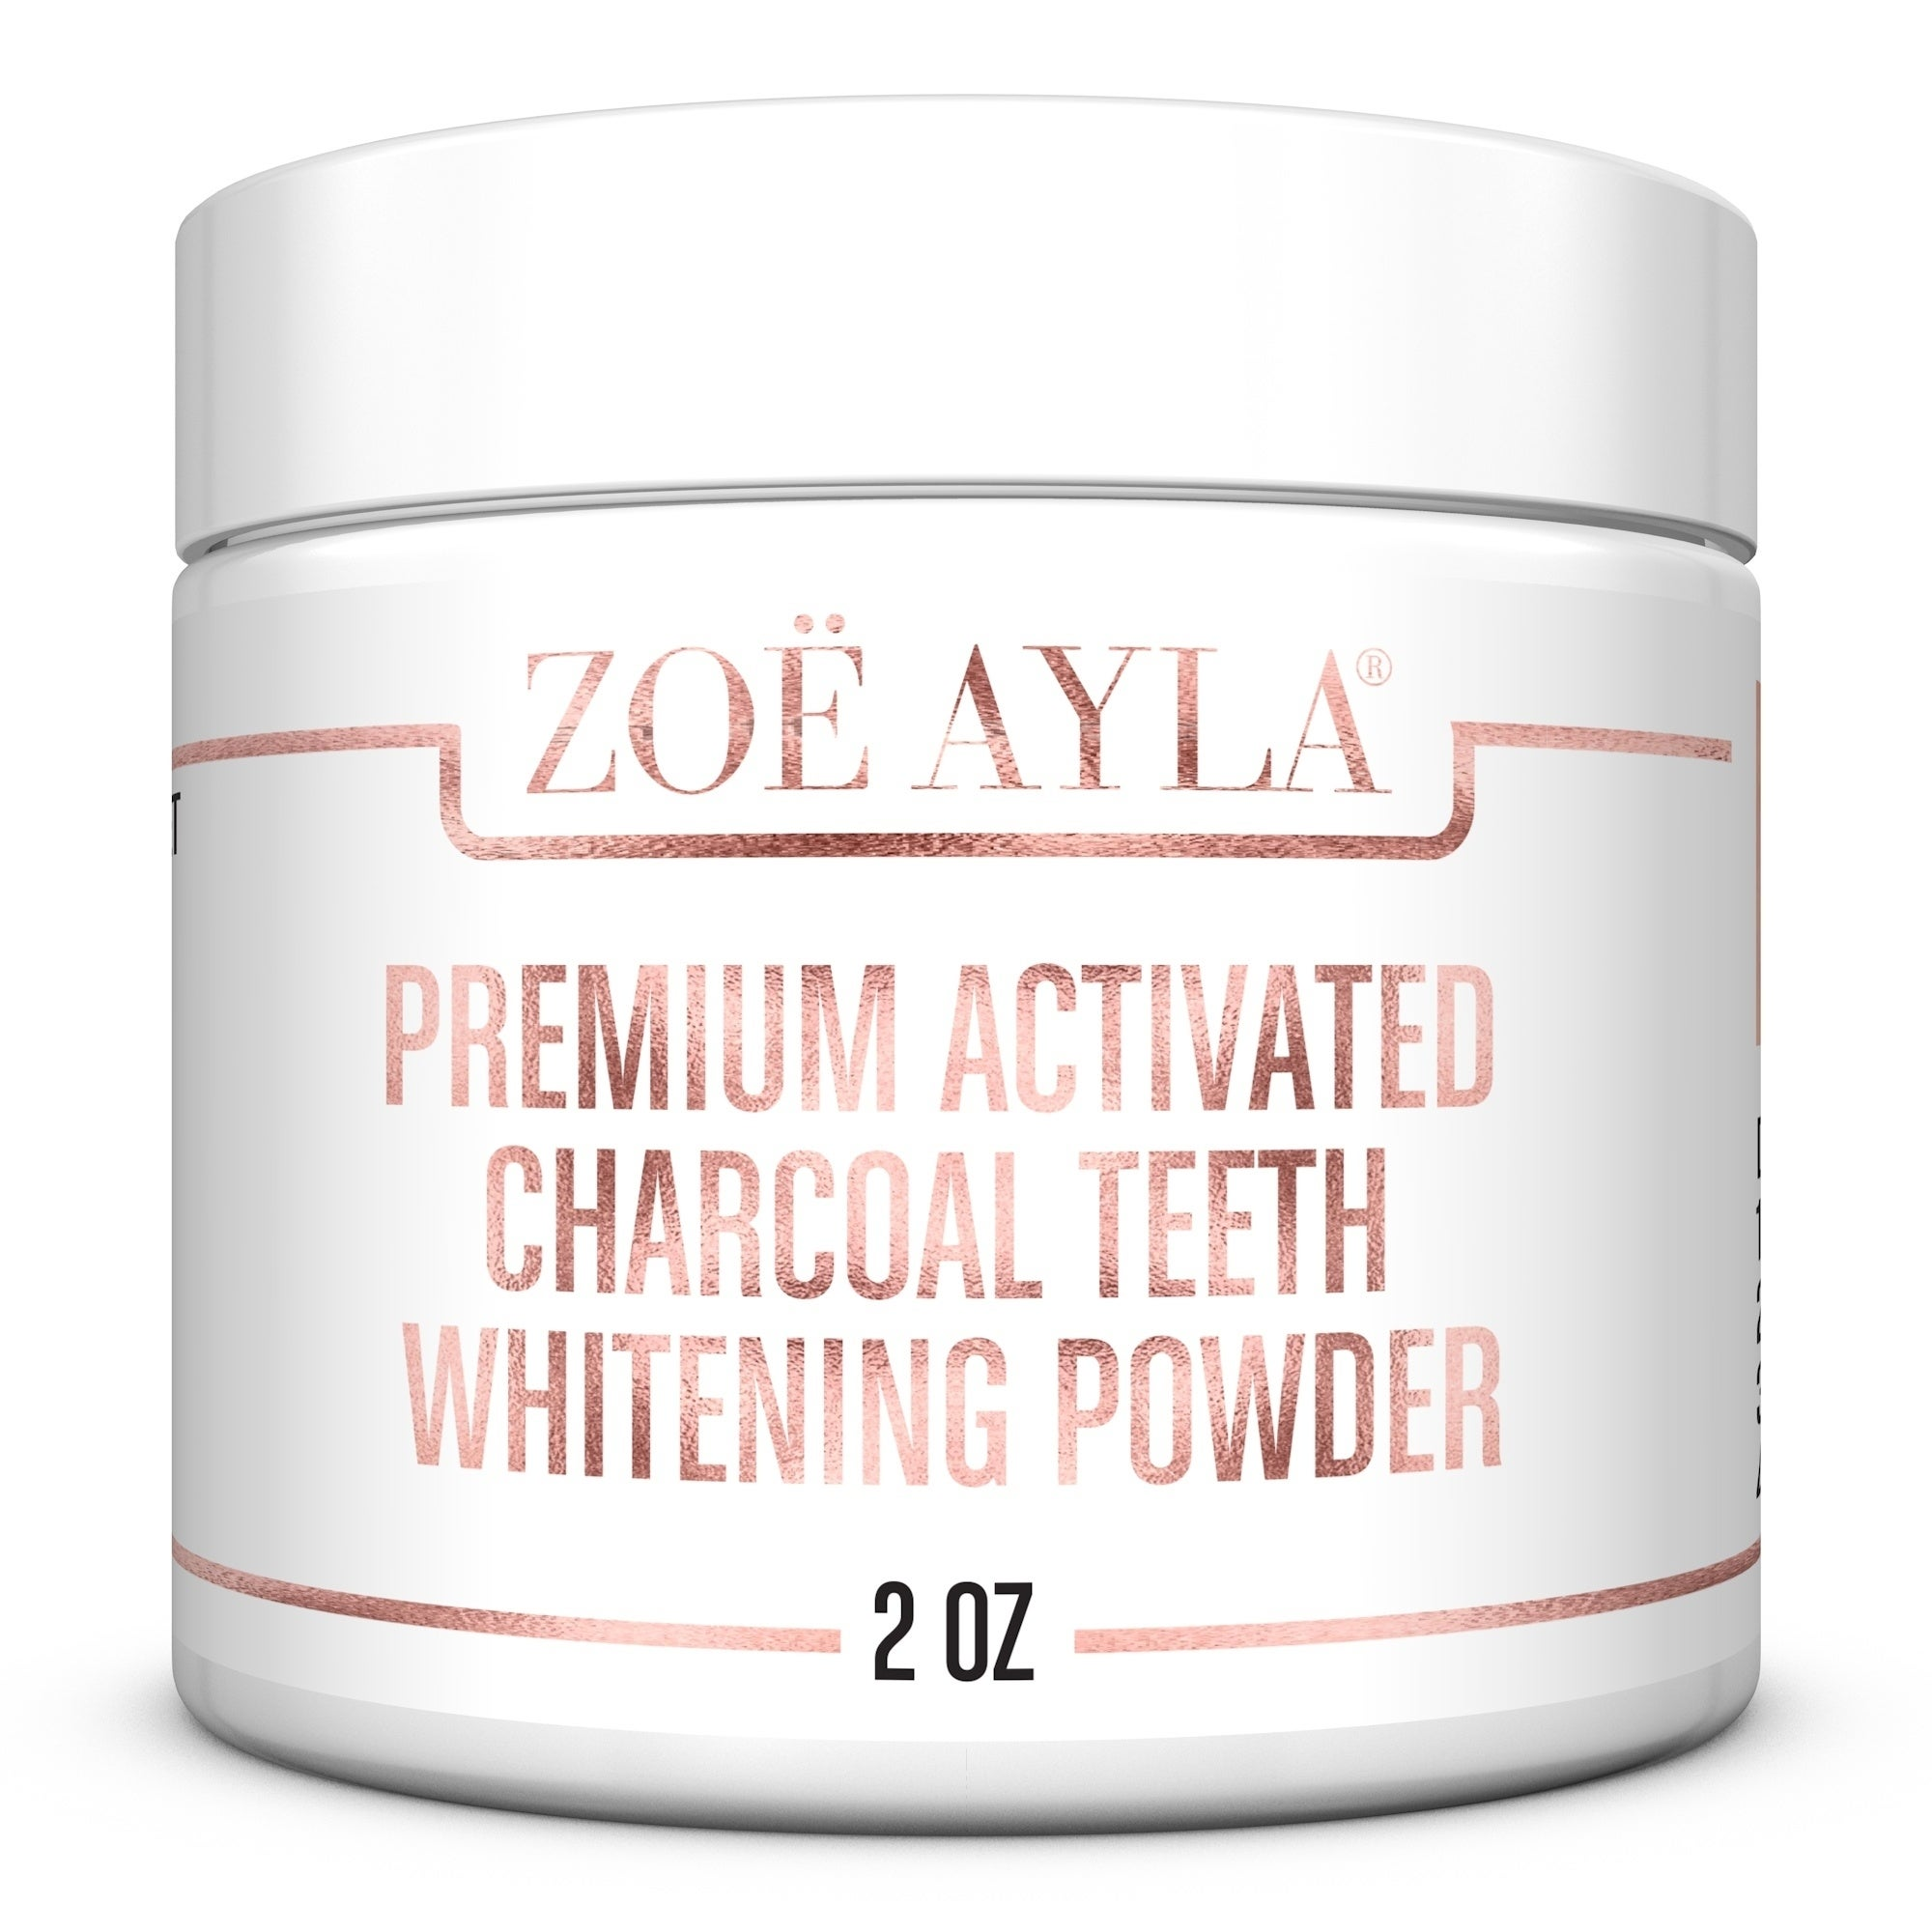 Twice Premium Activated Charcoal (Grey) Teeth Whitening P...